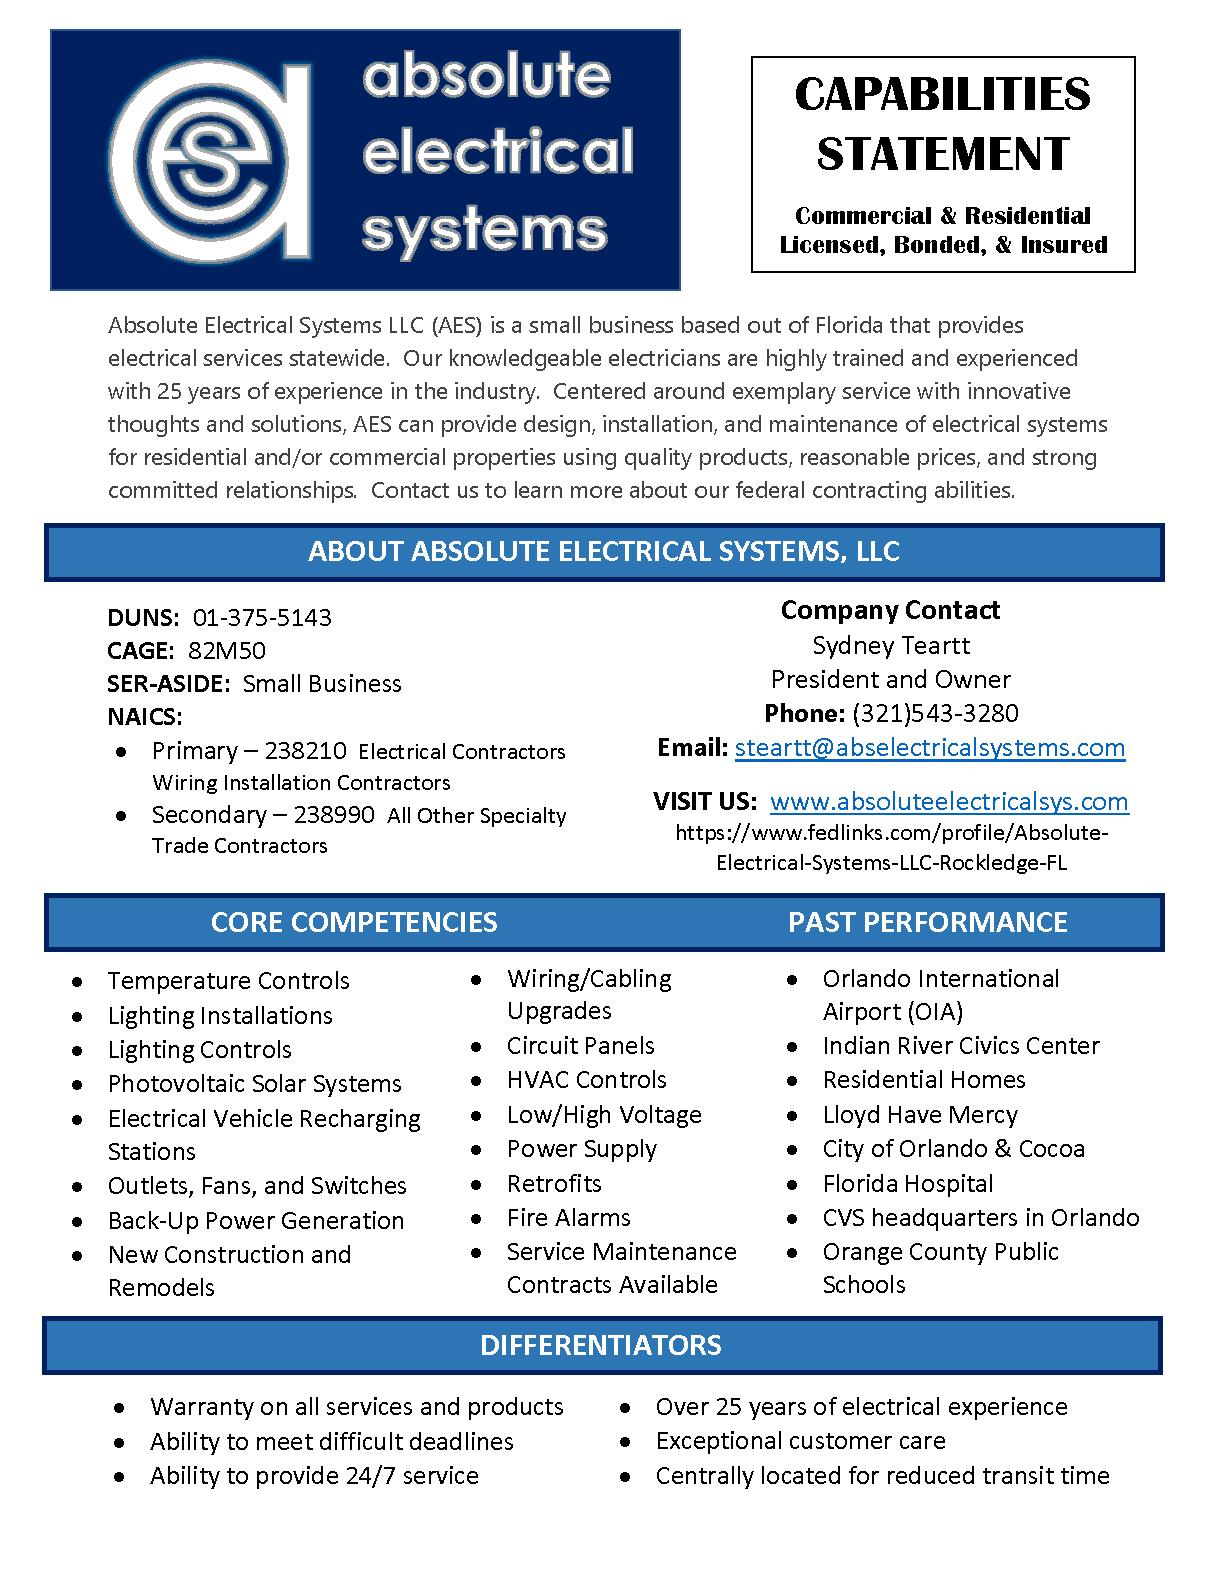 Absolute electrical systems llc capability statement